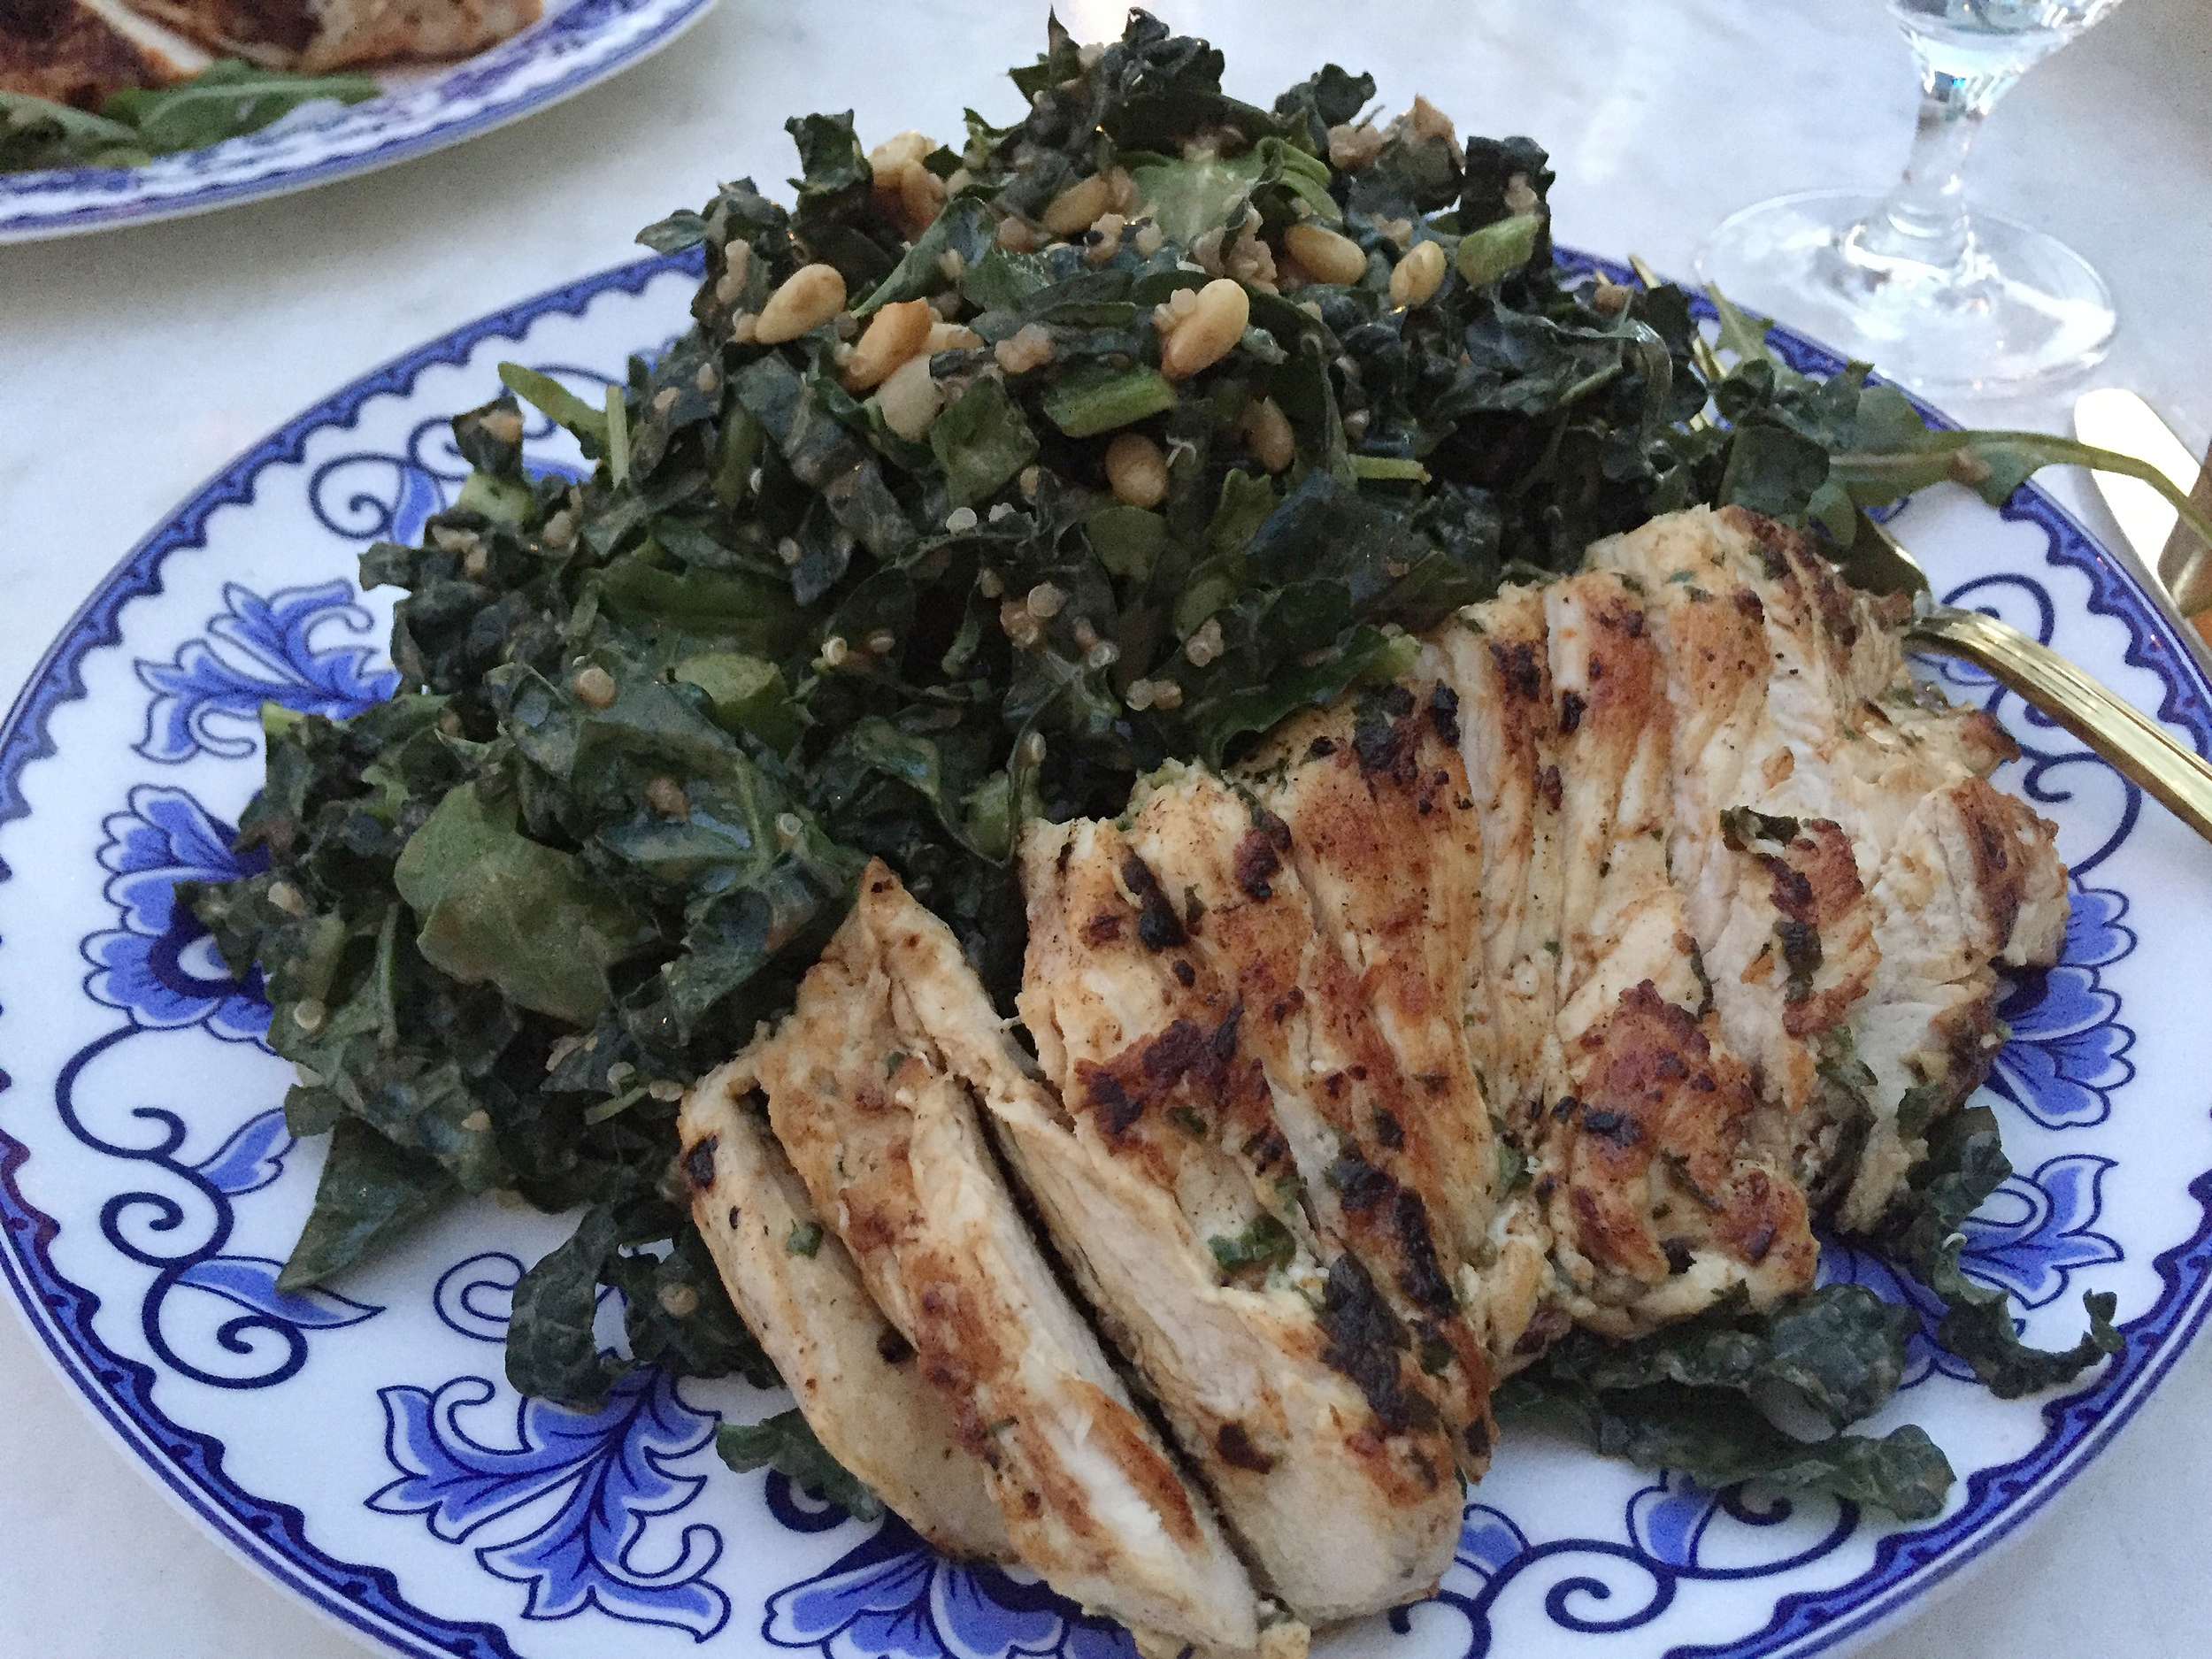 Kale Salad at Ivory on Sunset